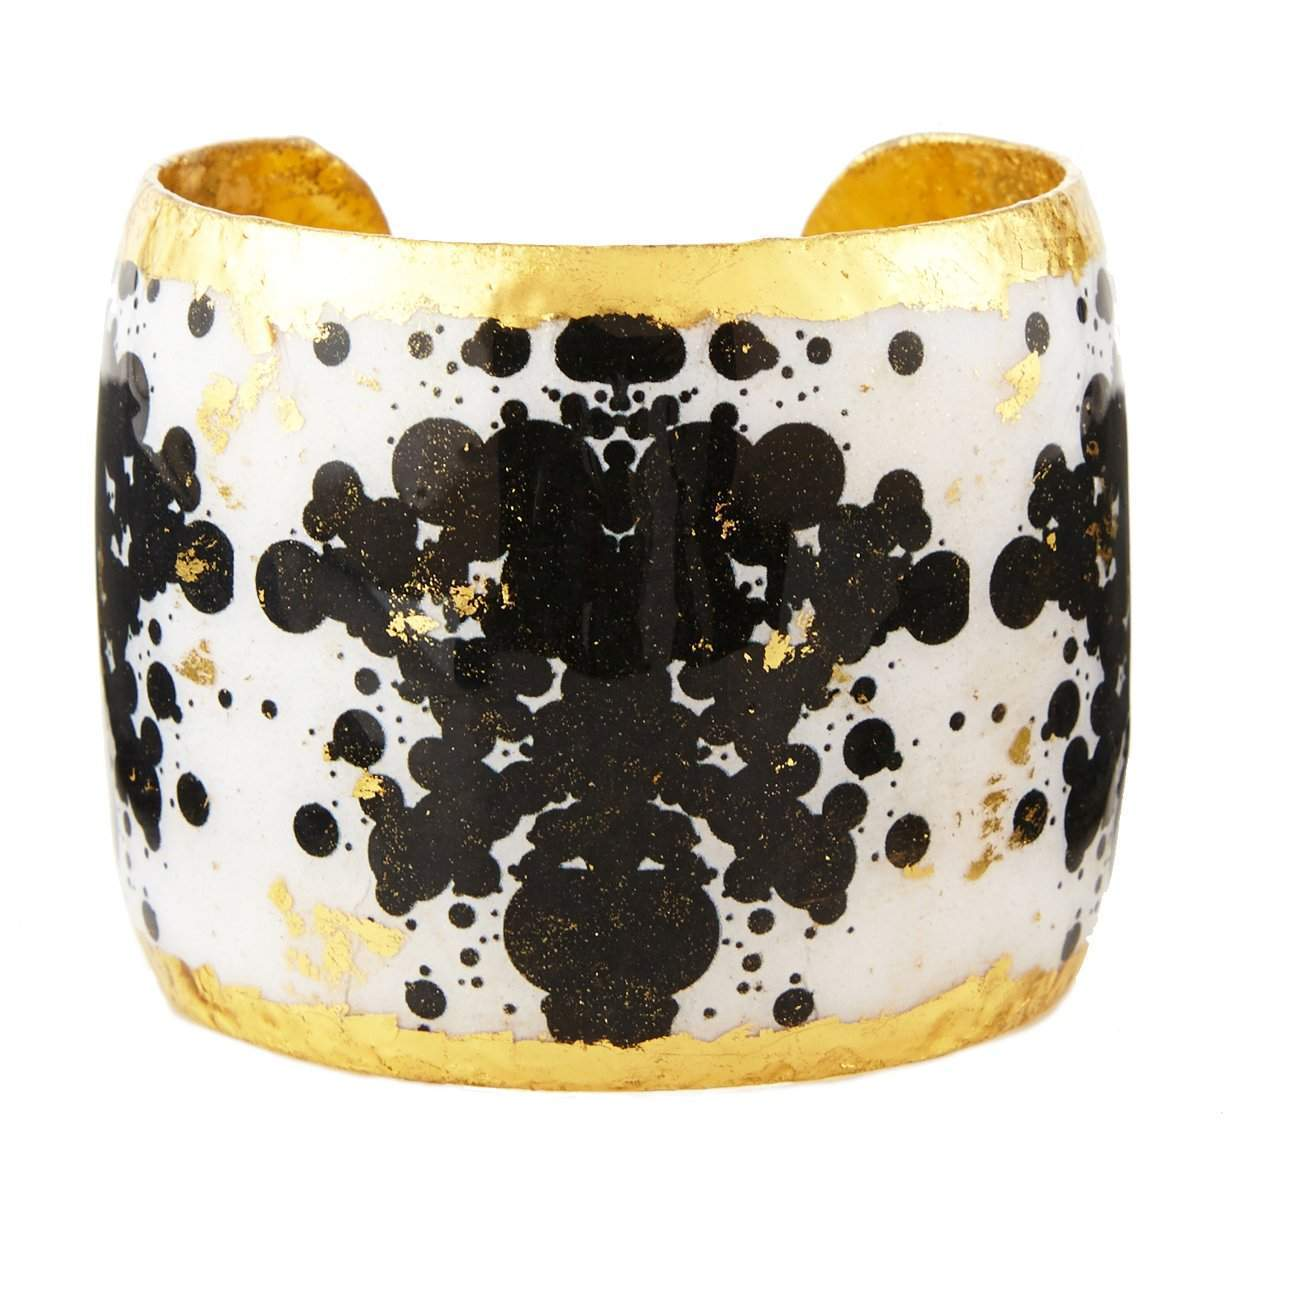 "B&W Rorschach 2"" Gold Cuff - BW133-Evocateur-Renee Taylor Gallery"